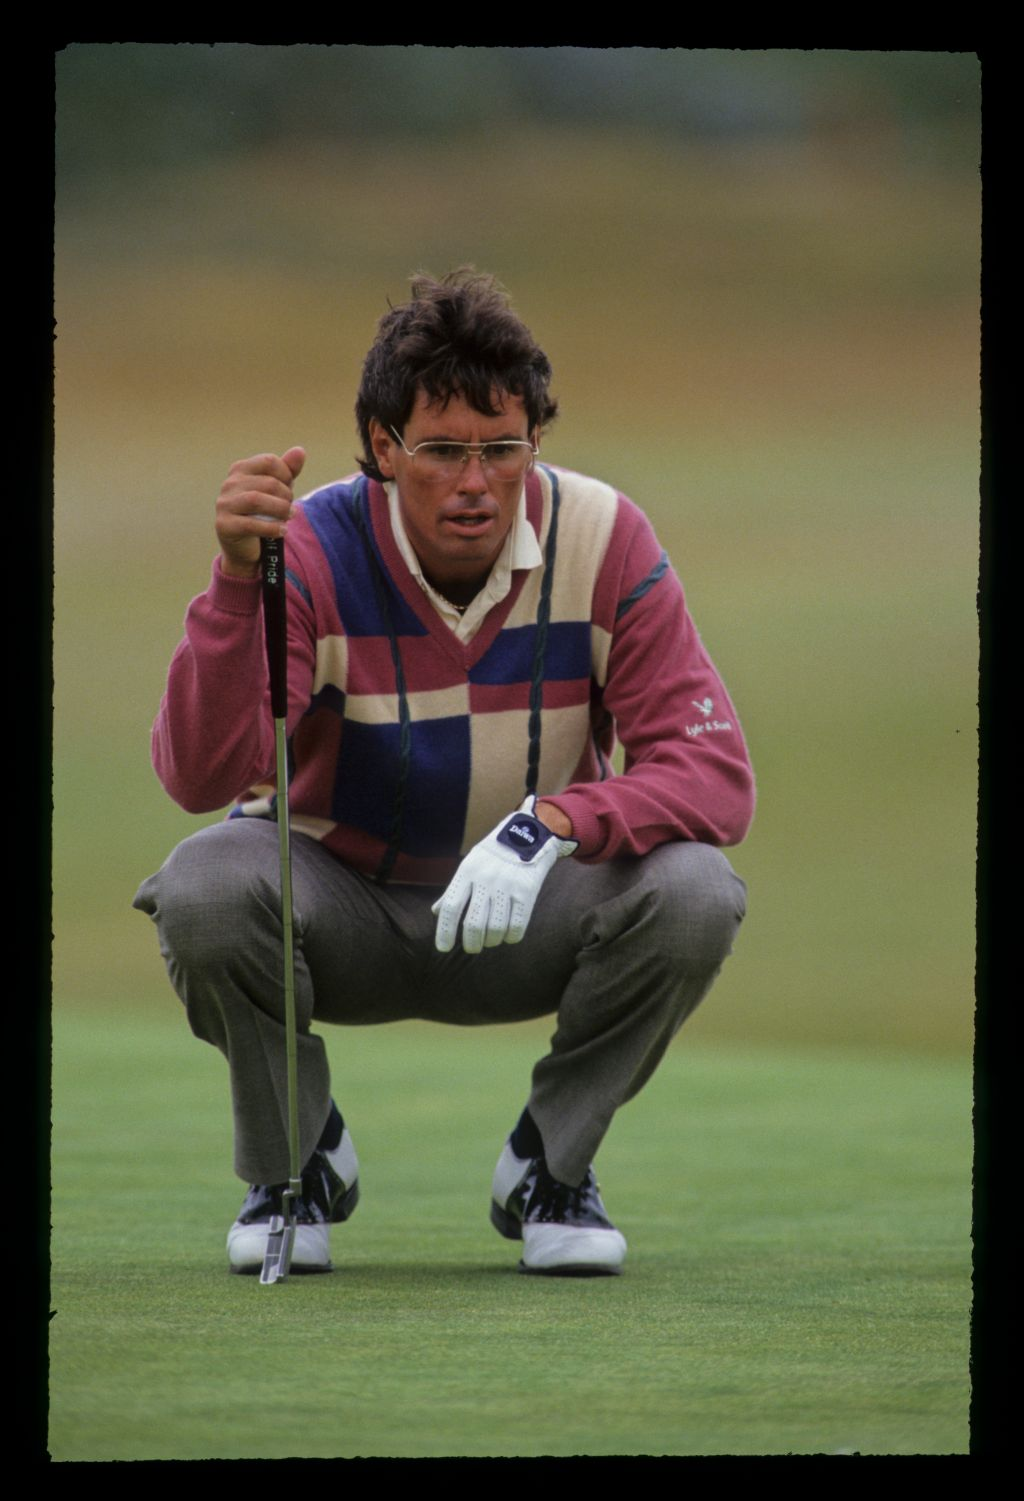 Ian Baker Finch squatting to line up a putt on his way to winning the 1991 Open Championship